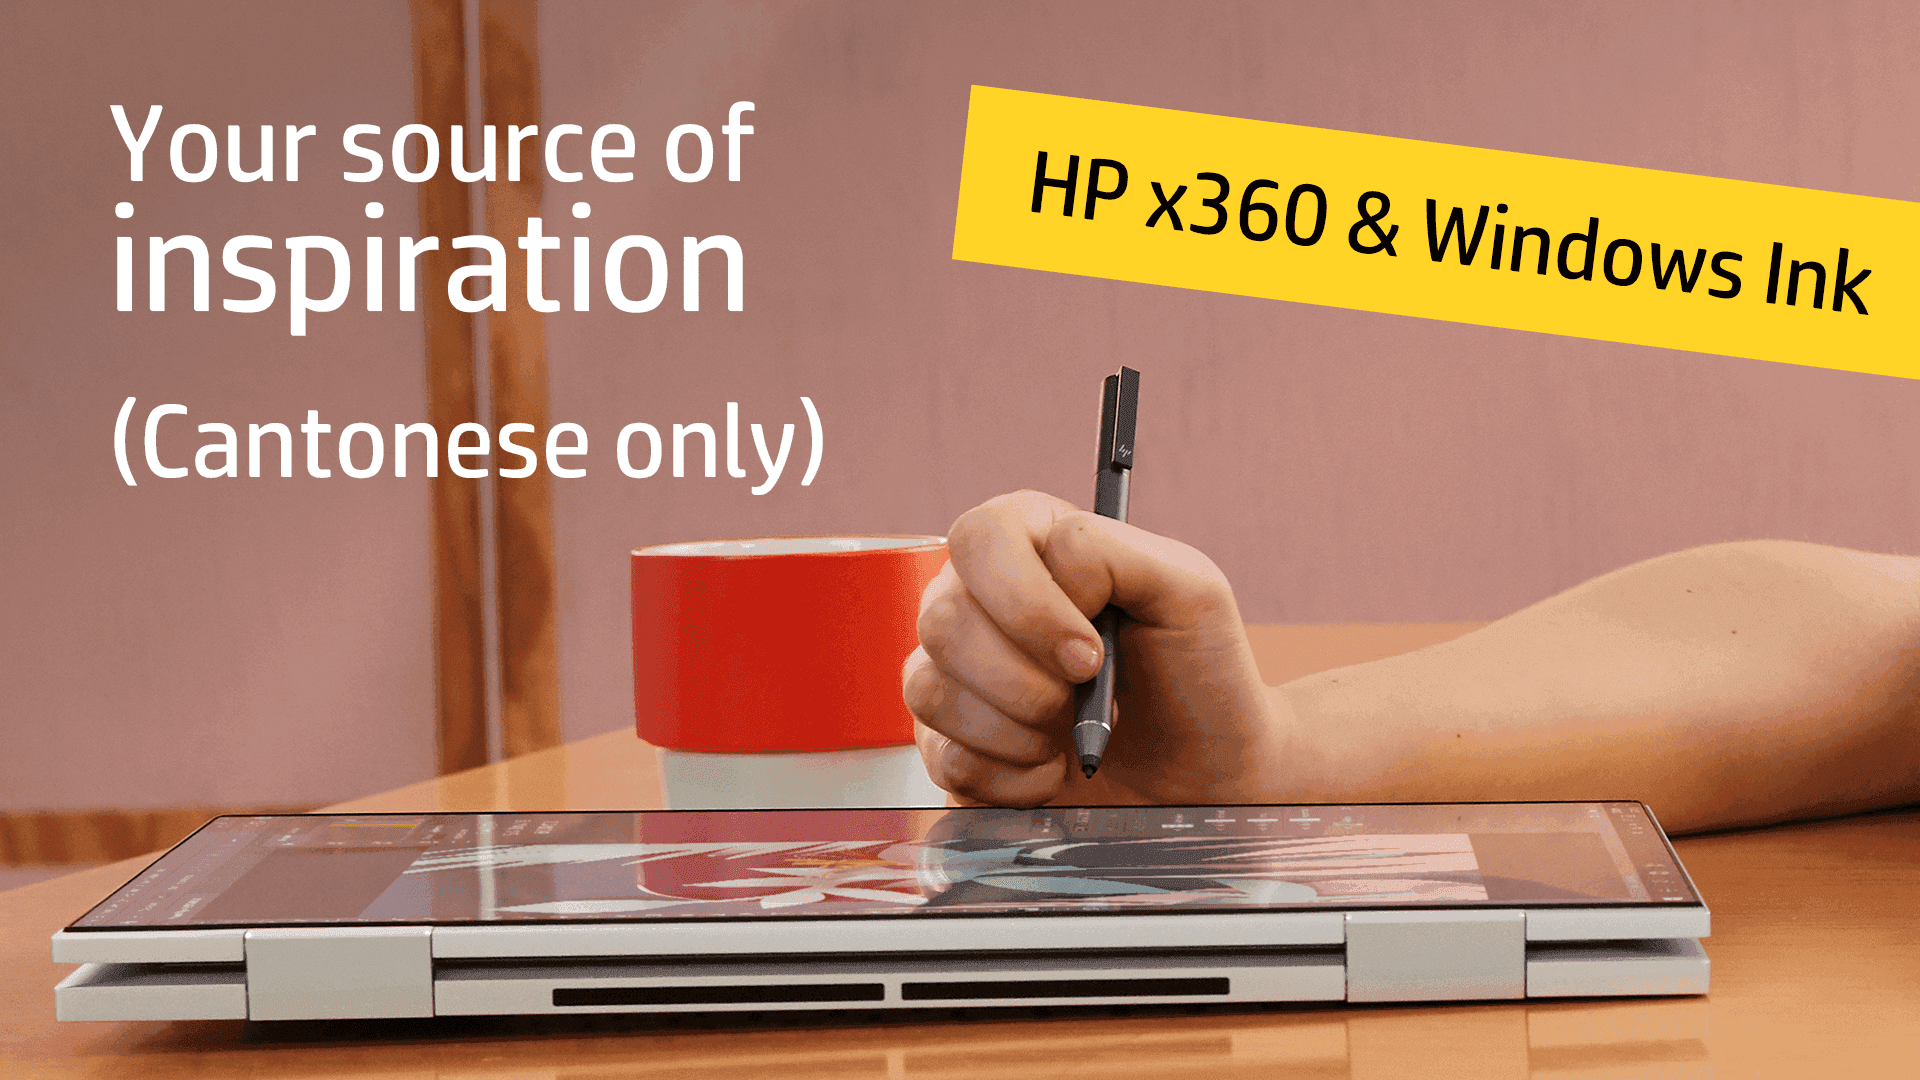 Windows Ink & HP x360 series – your source of inspiration